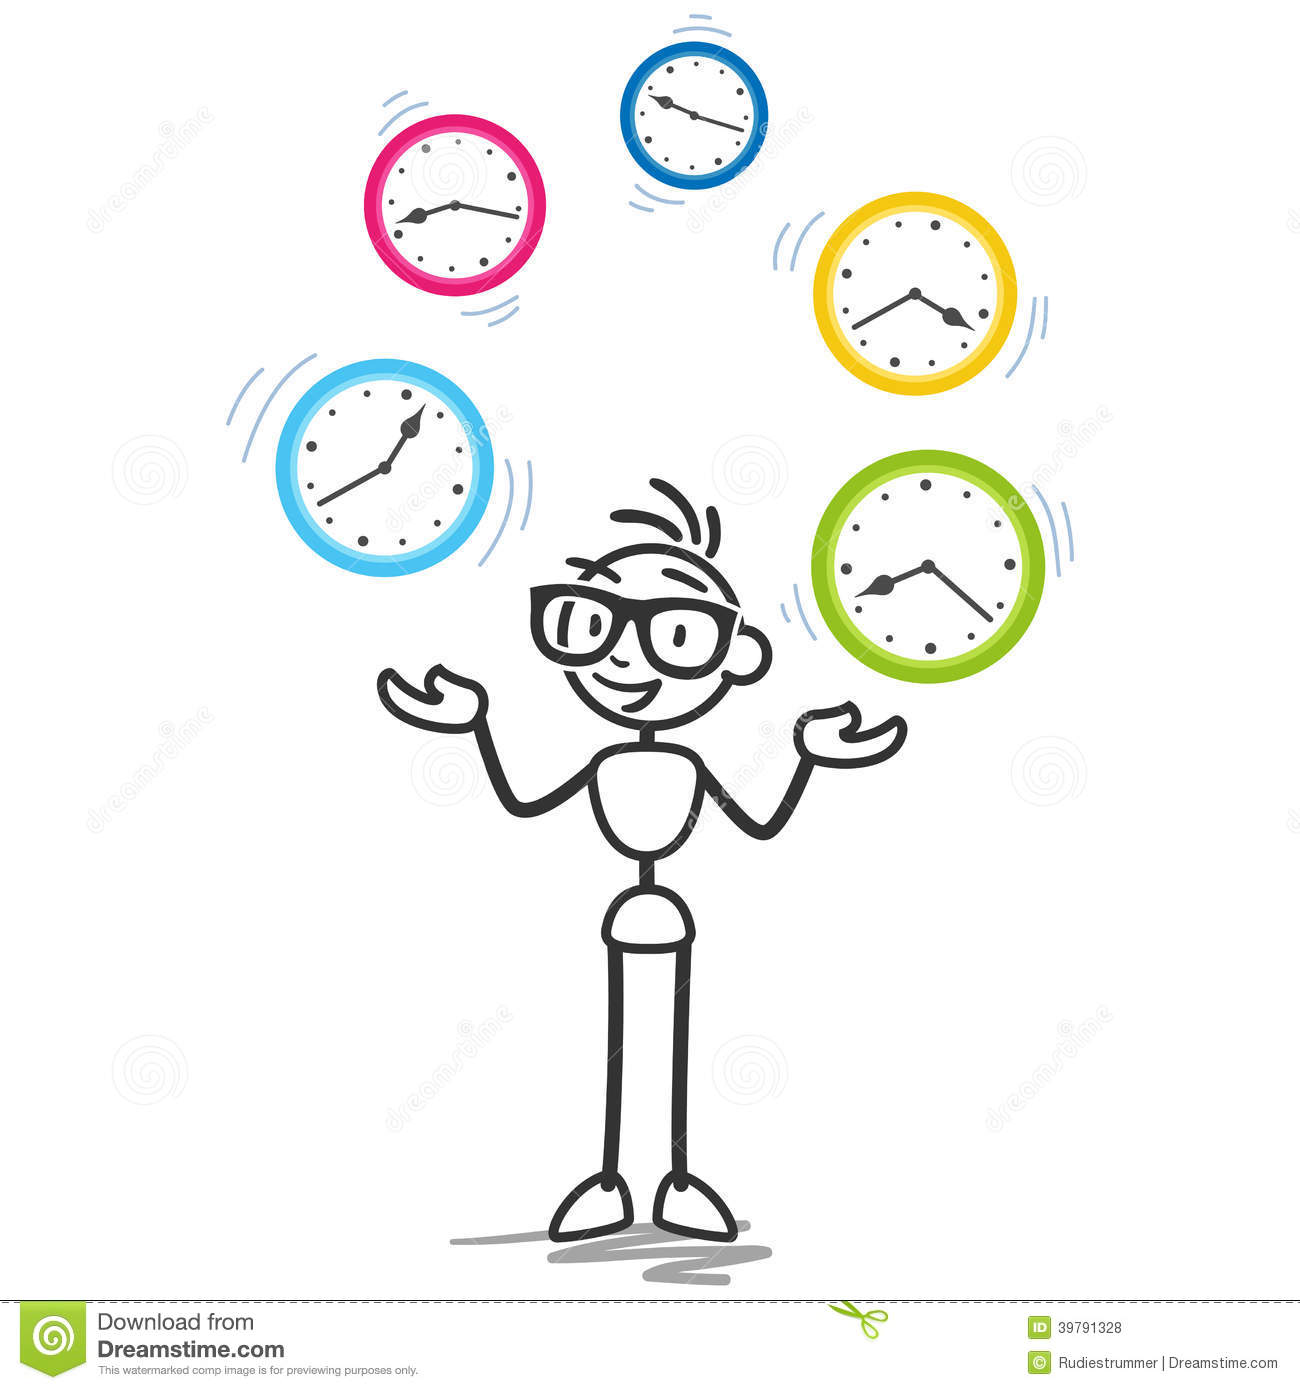 Stress clipart time management.  clipartlook